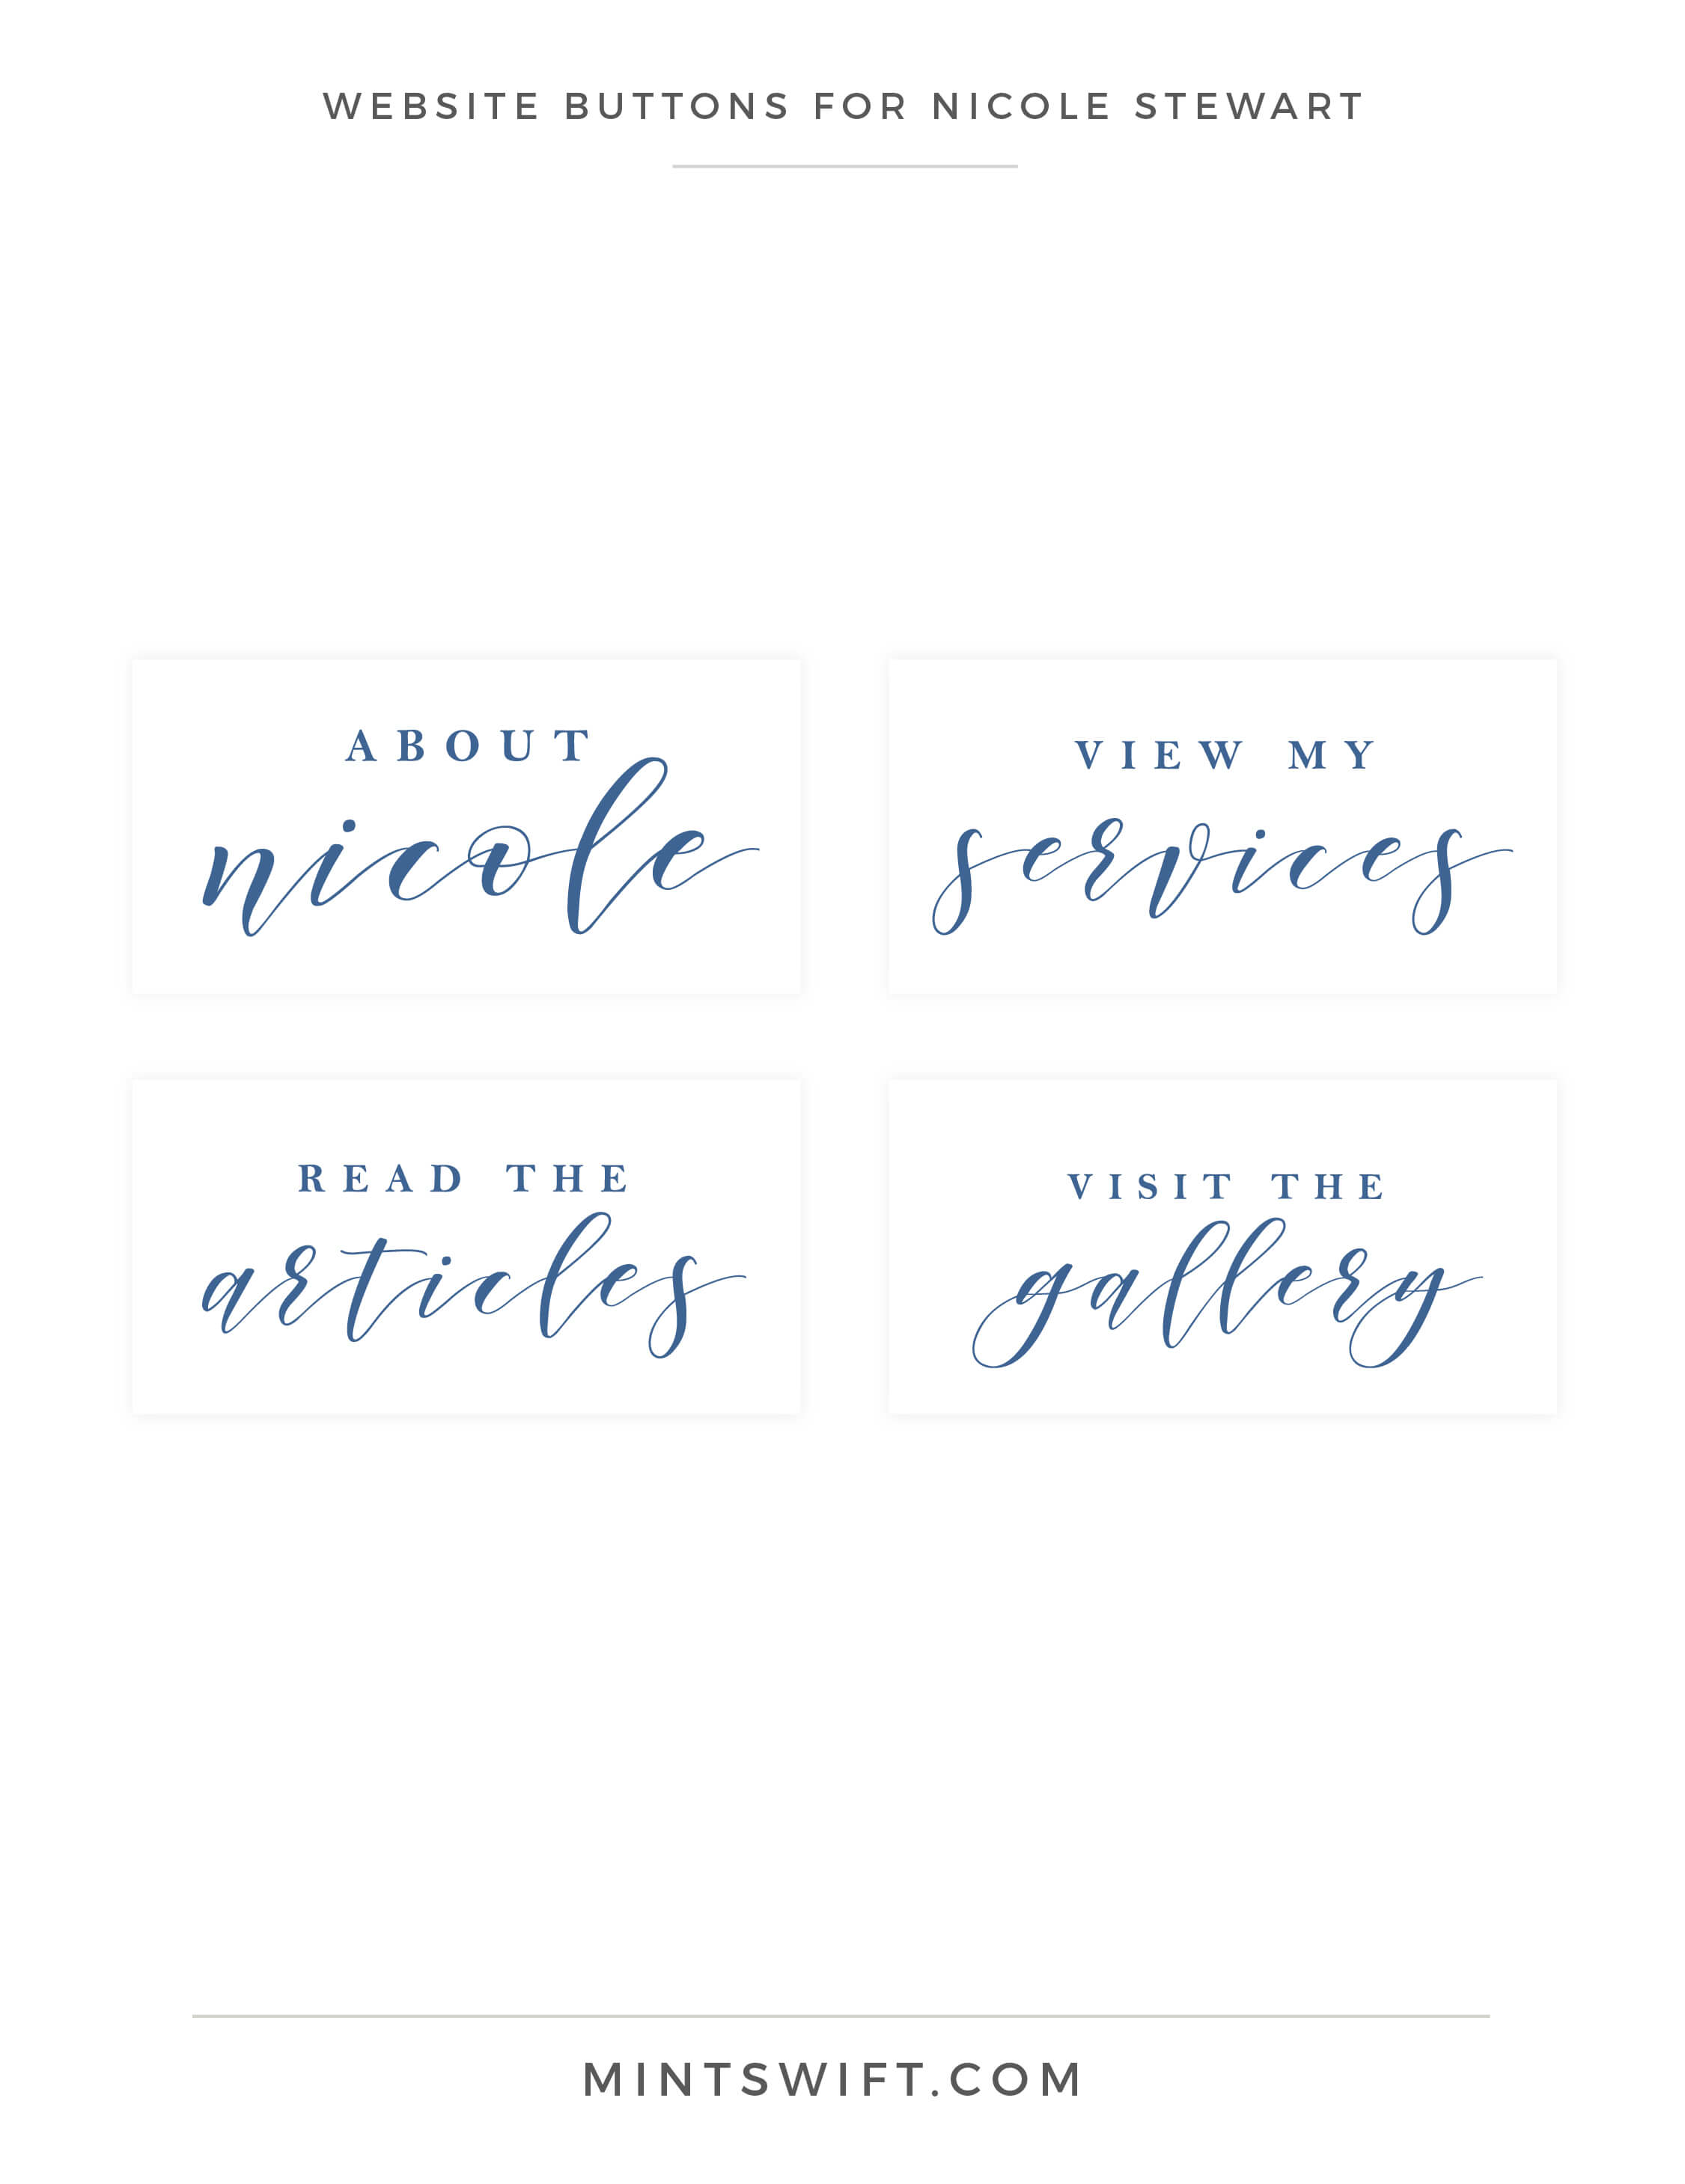 Nicole Stewart - Website Buttons - Brand Design Package - MintSwift